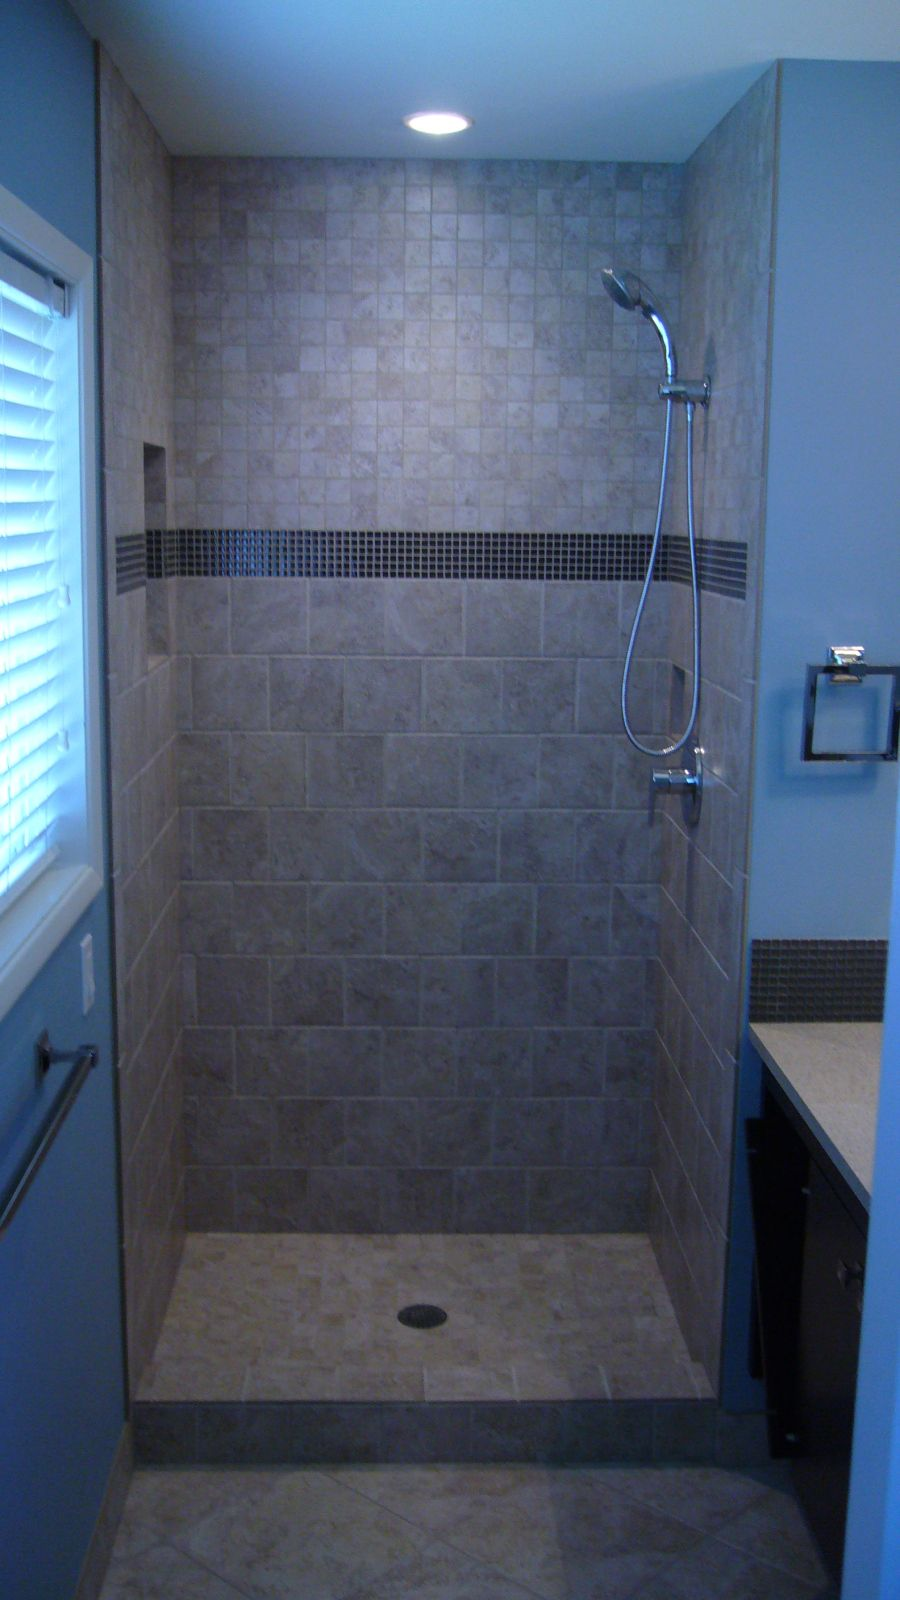 New Tiled shower stall | Pinterest | Building companies, Tile ...